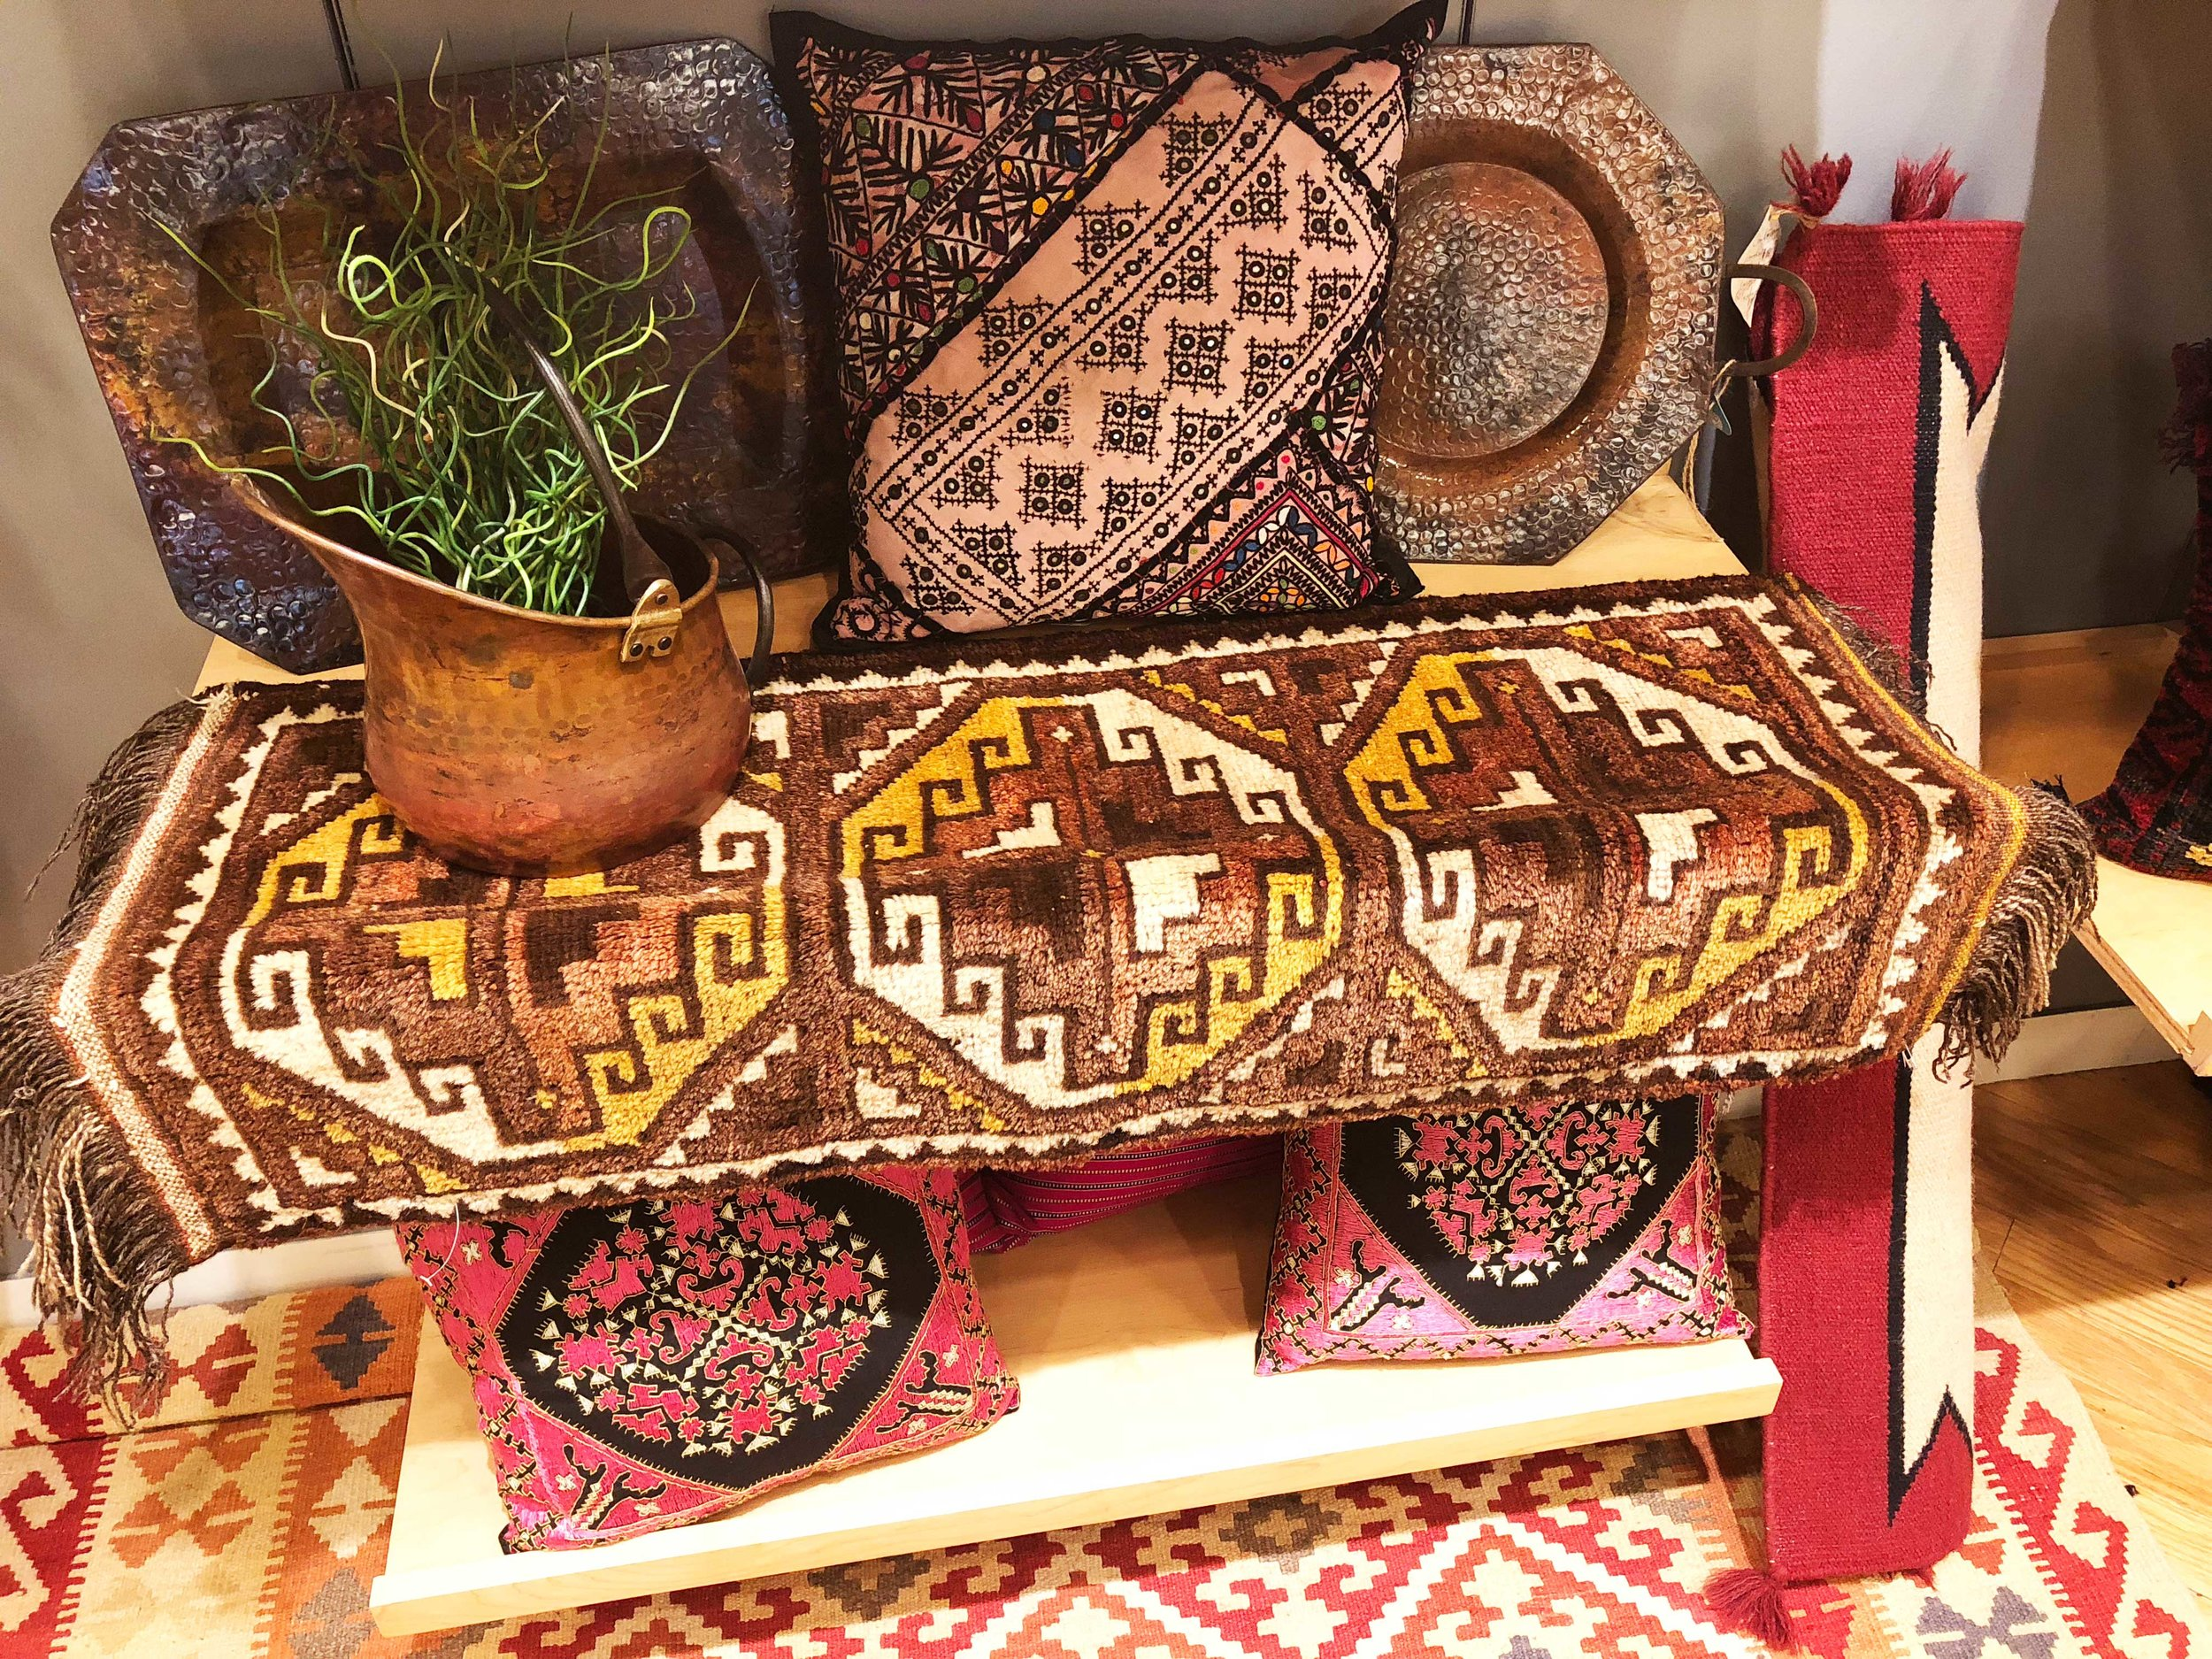 Home Decor - Turkish and Kilim rugs, Indian furniture, pillows, throws and blankets, copper, pottery, vases, candlestick holders